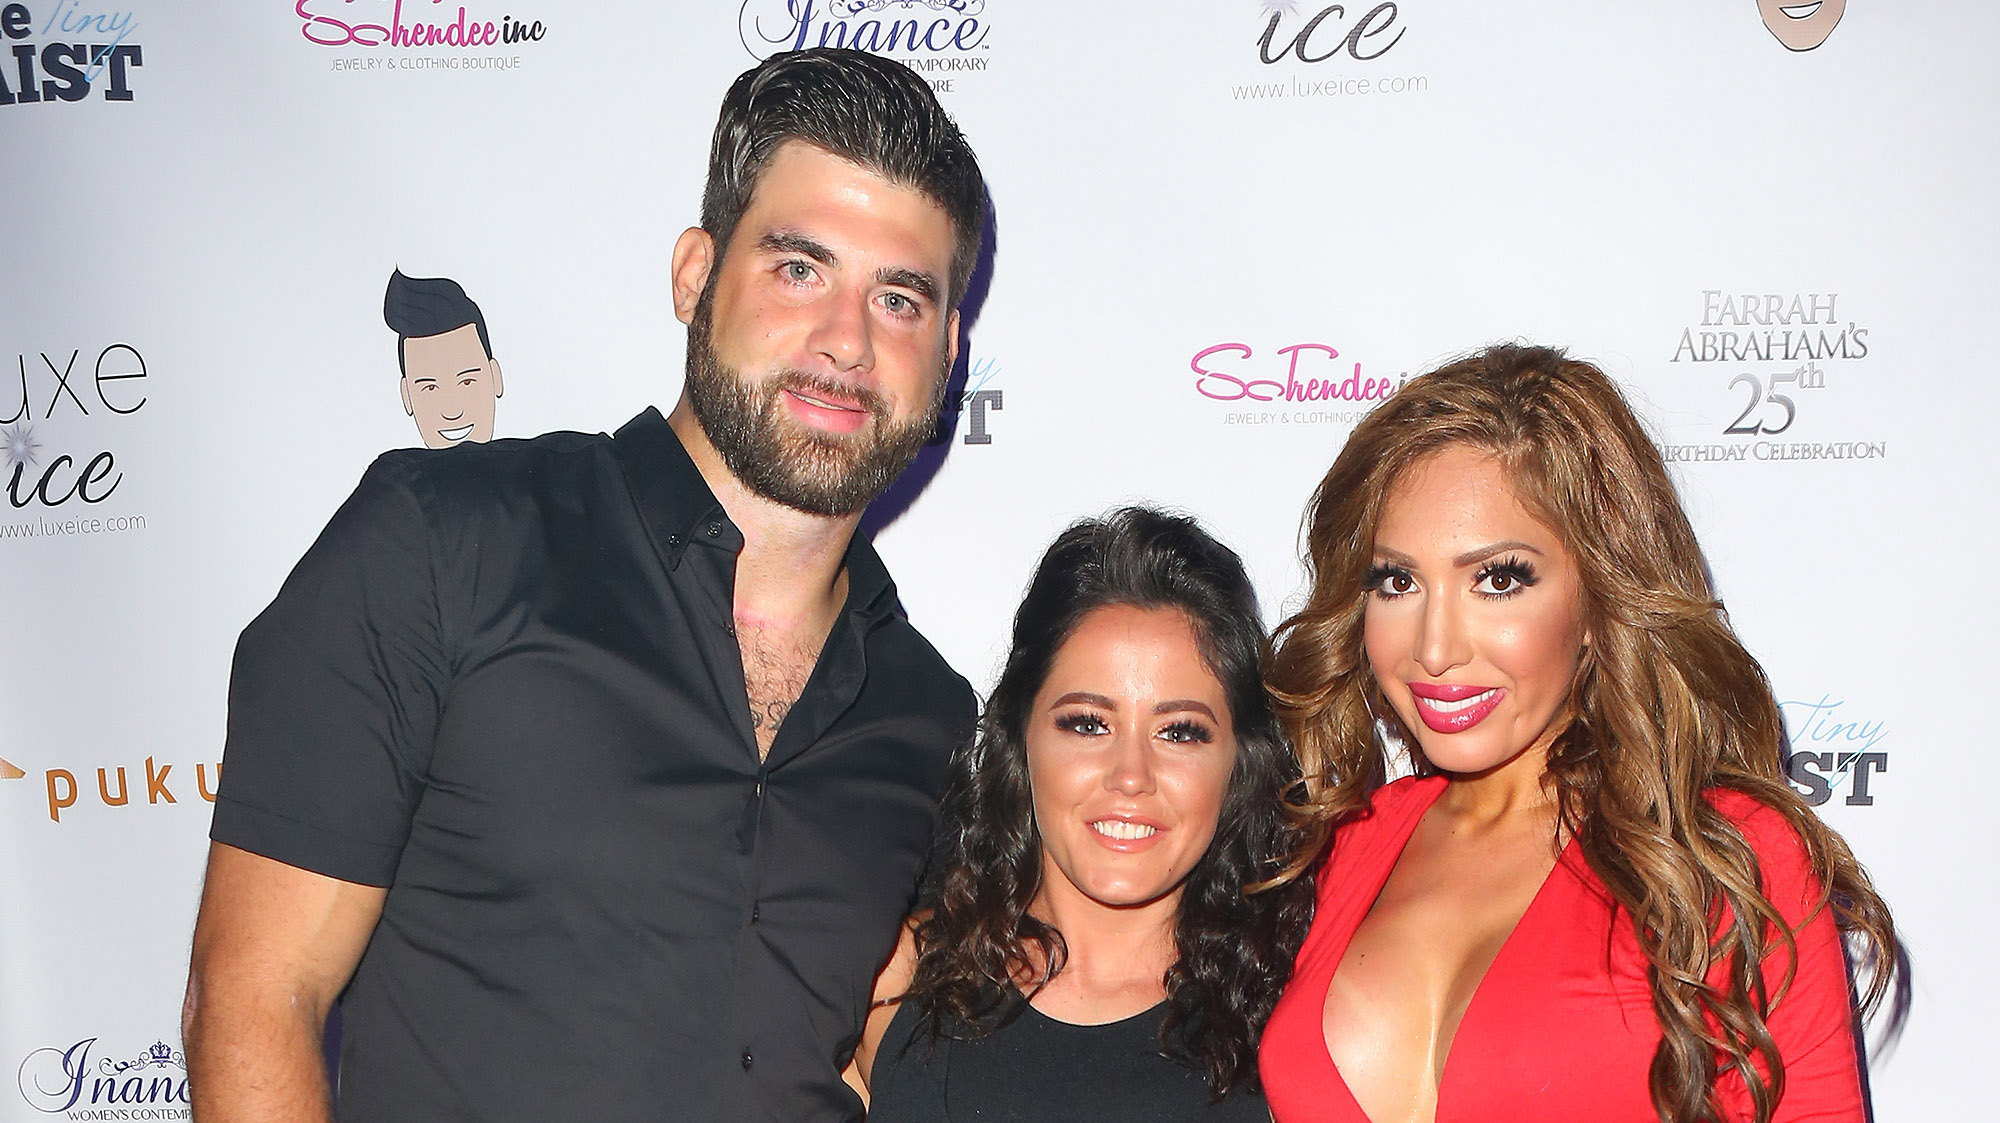 Image result for Farrah abrams and jenelle